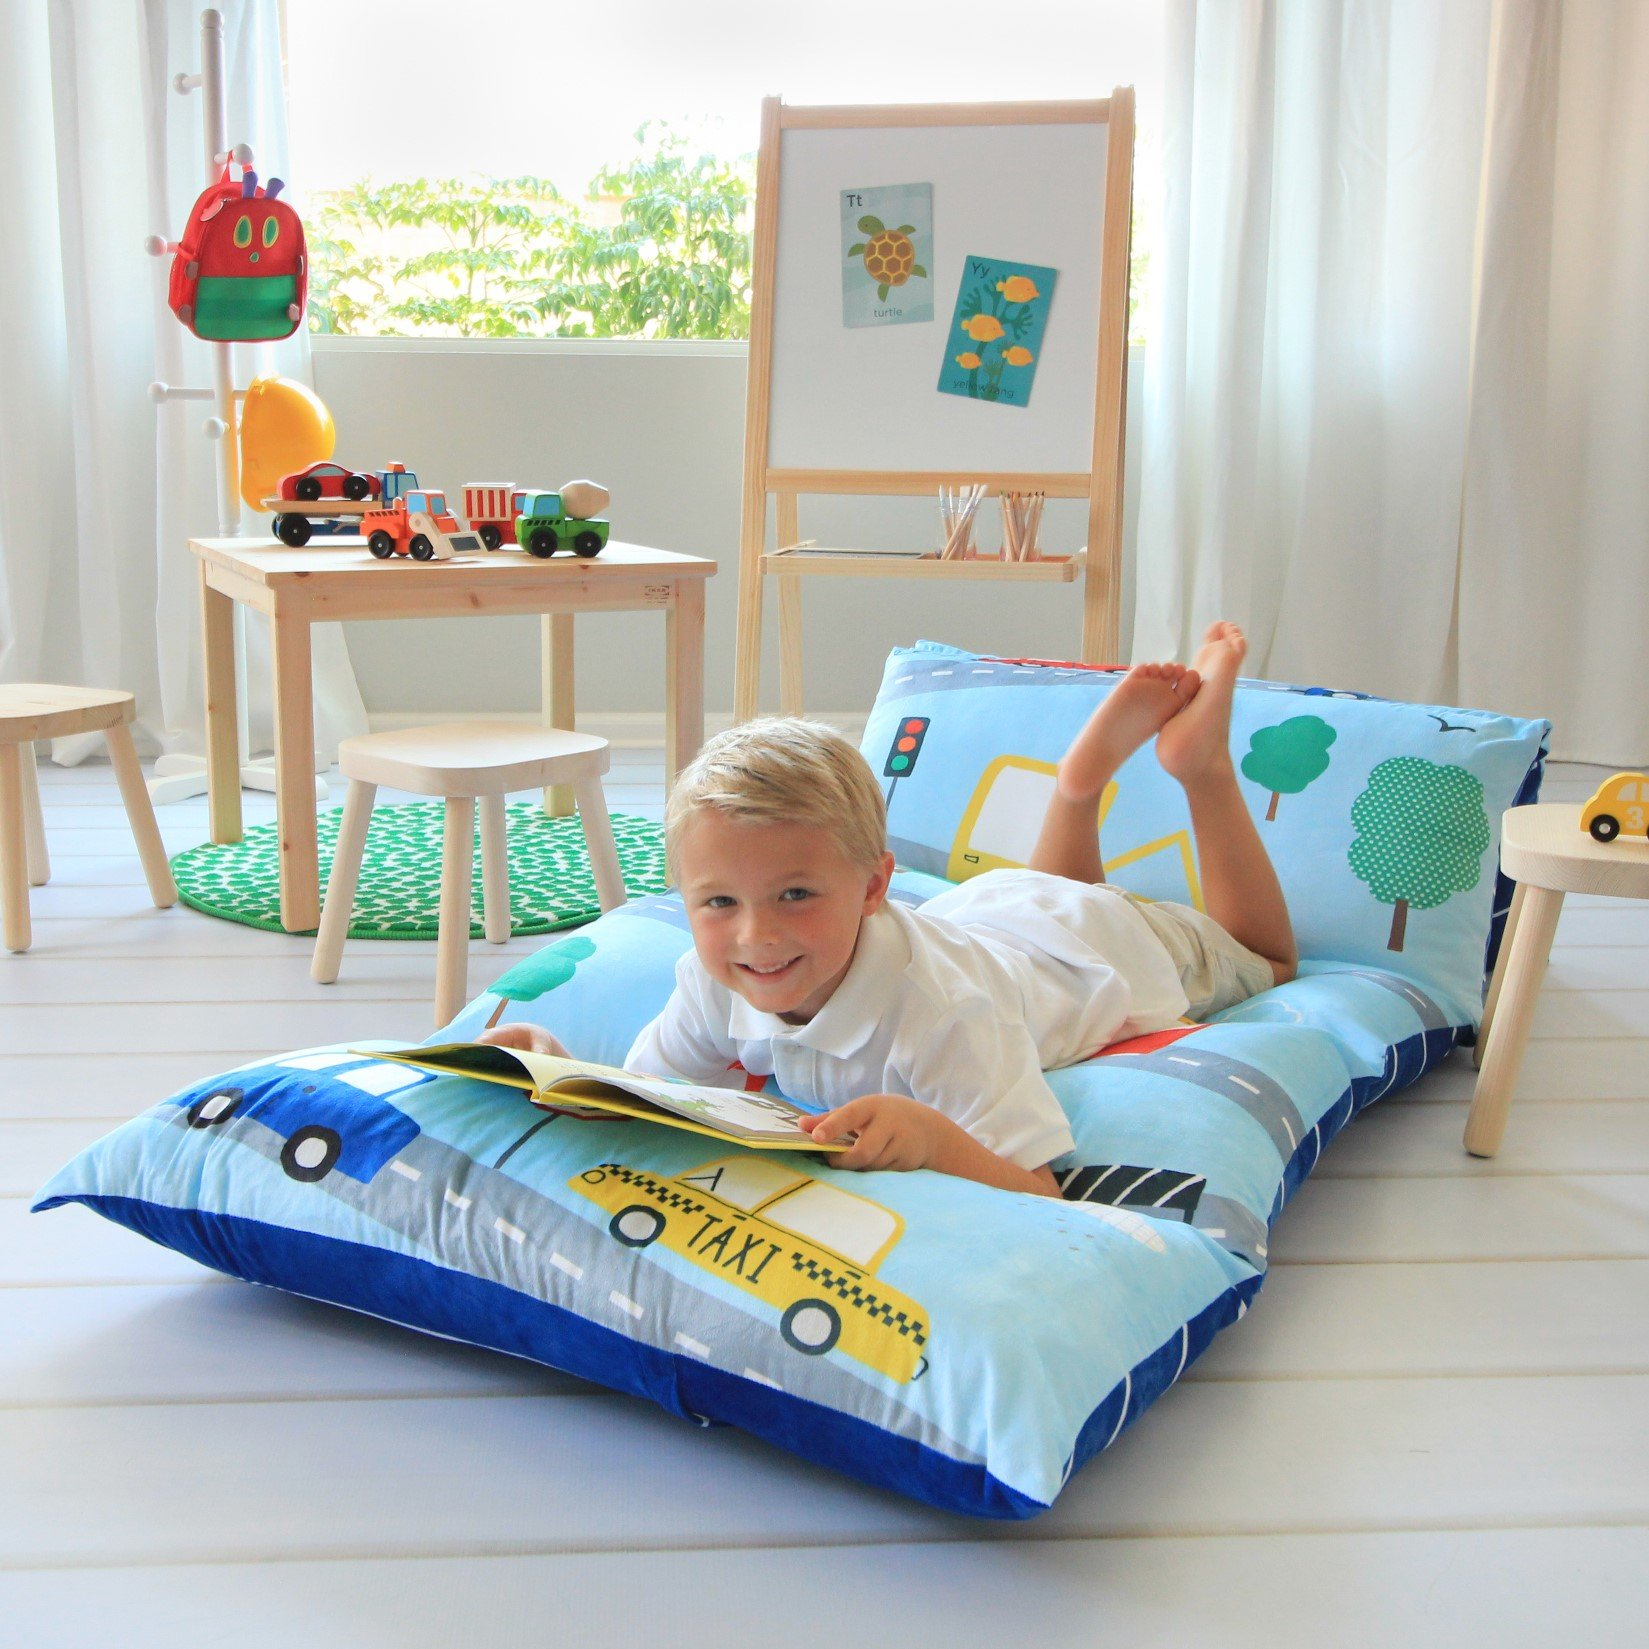 Amazon.com : Kid\'s Floor Pillow Bed Cover - Use as Nap Mat, Portable ...